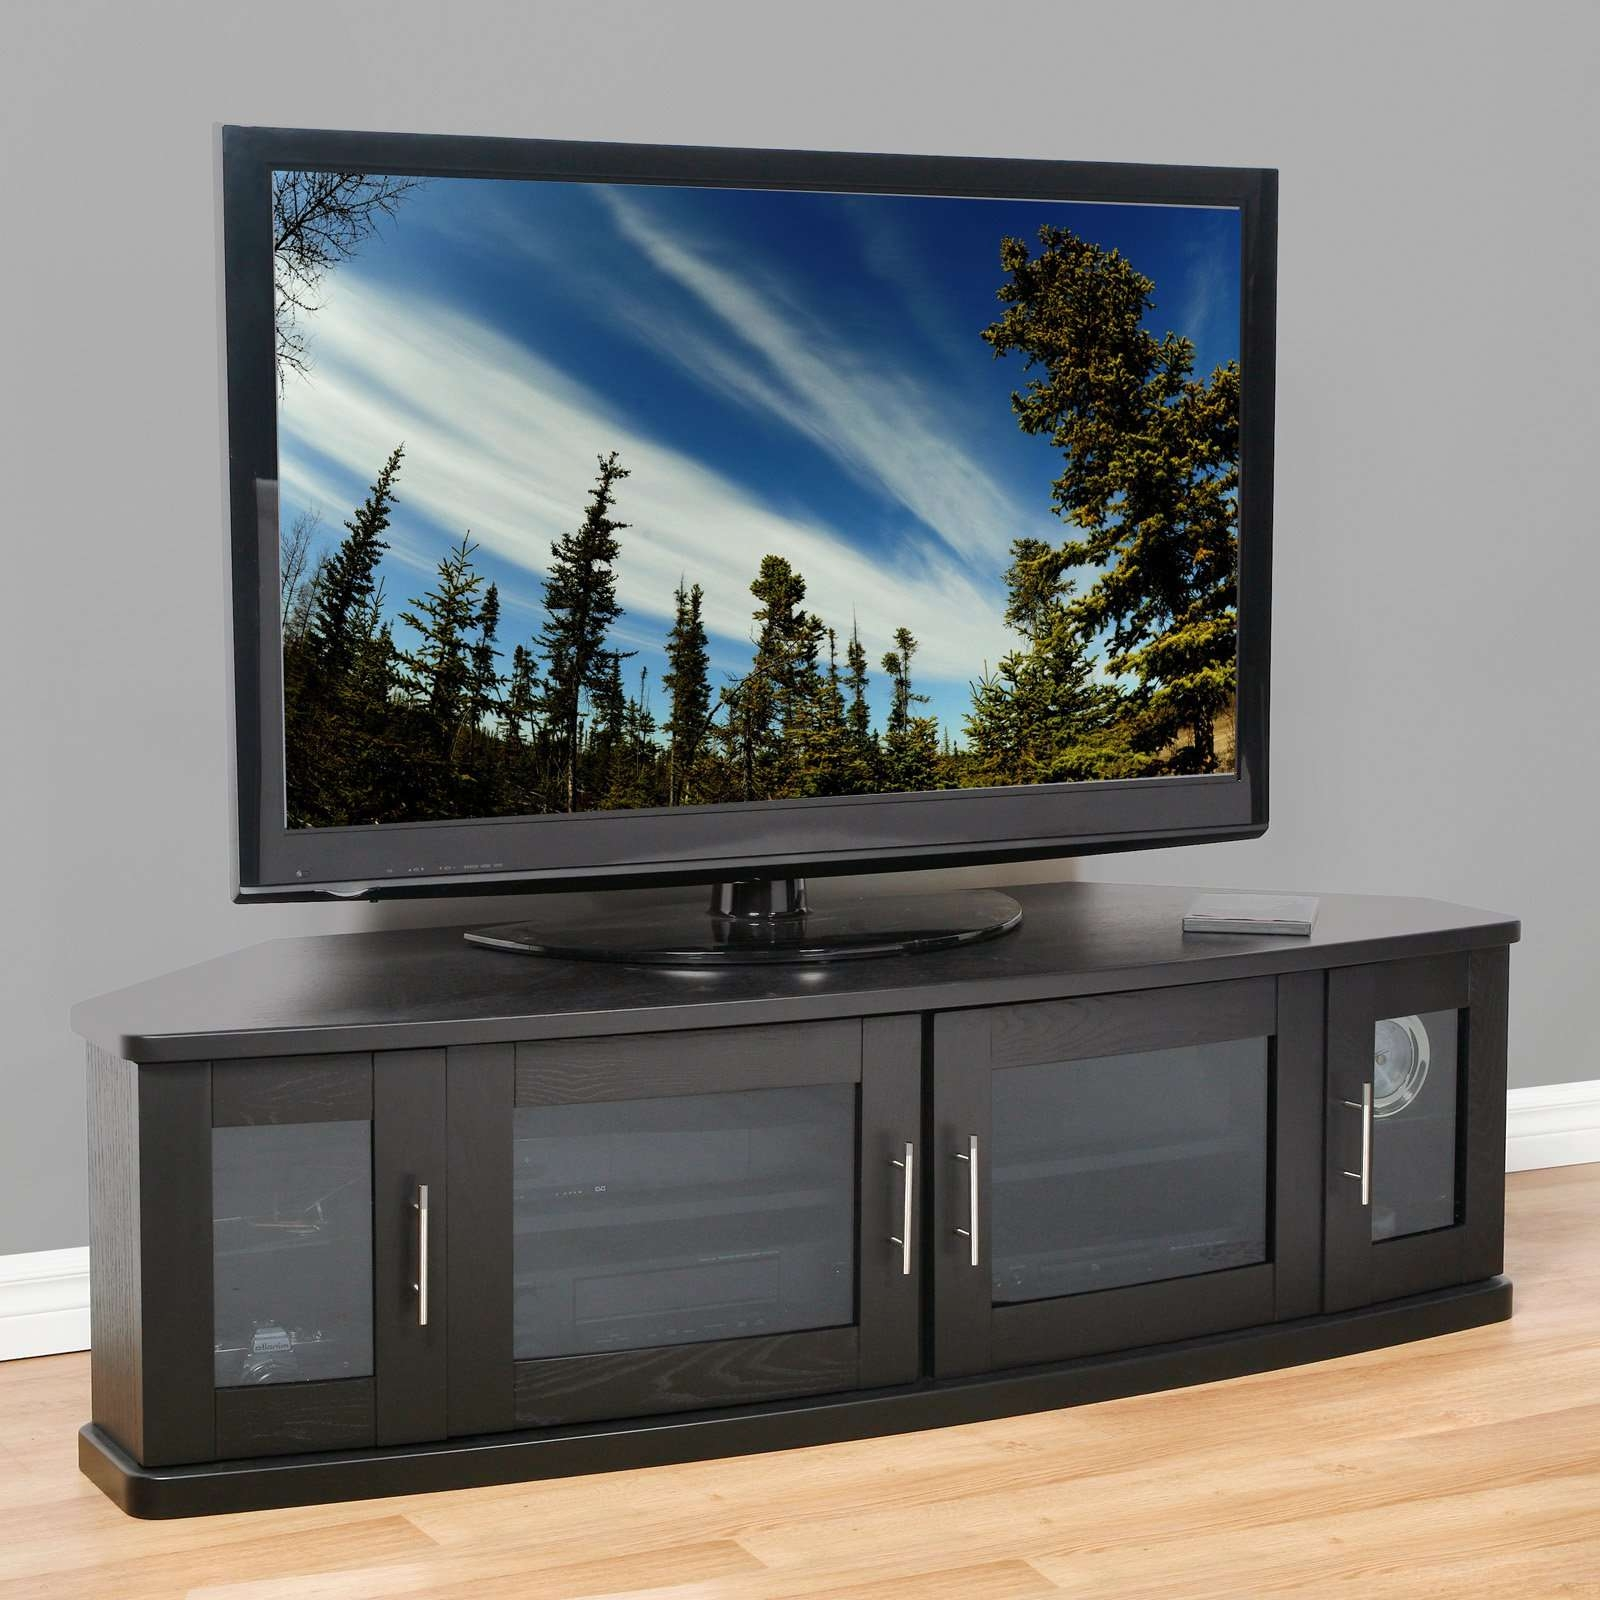 Tv Stand : Plateau Newport Inchrner Tv Stand In Black Walmartm Regarding Black Corner Tv Stands For Tvs Up To (View 20 of 20)